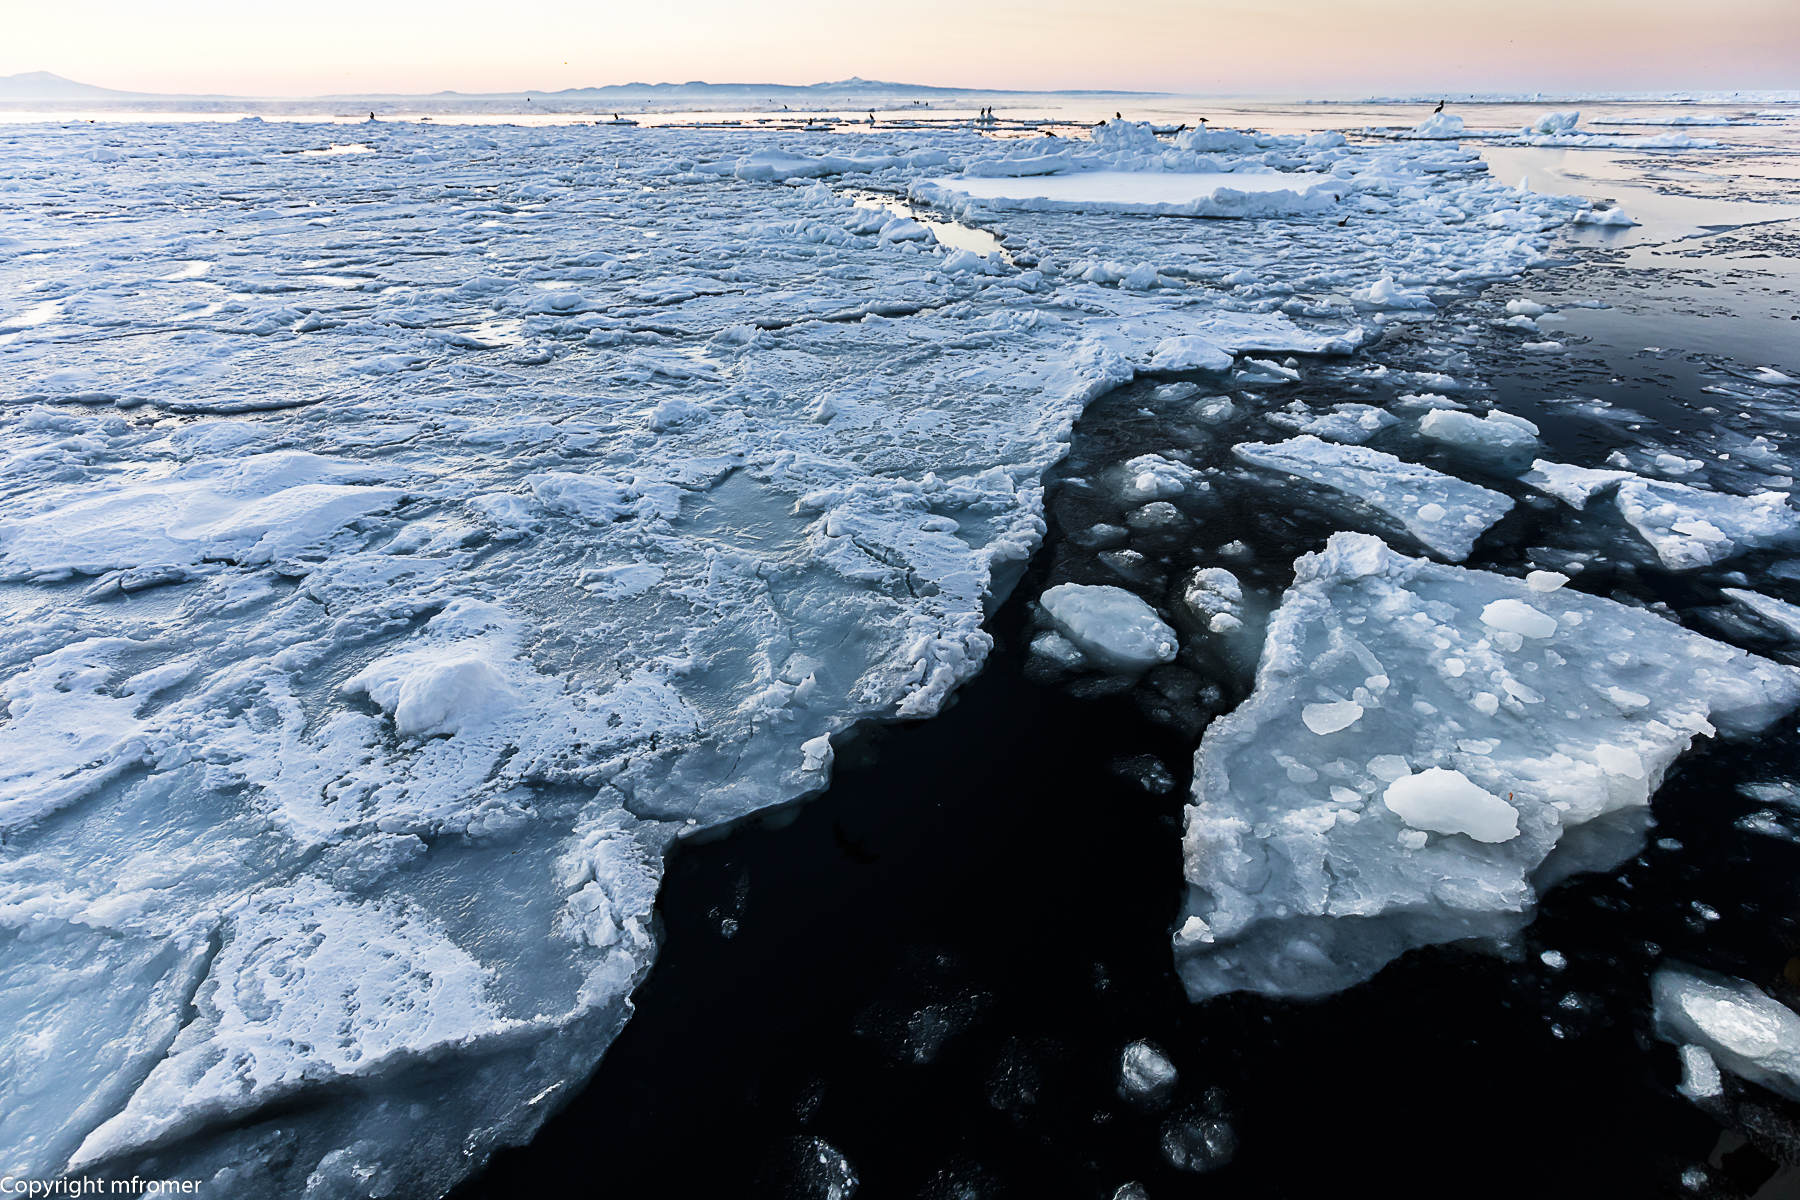 Black sea and ice